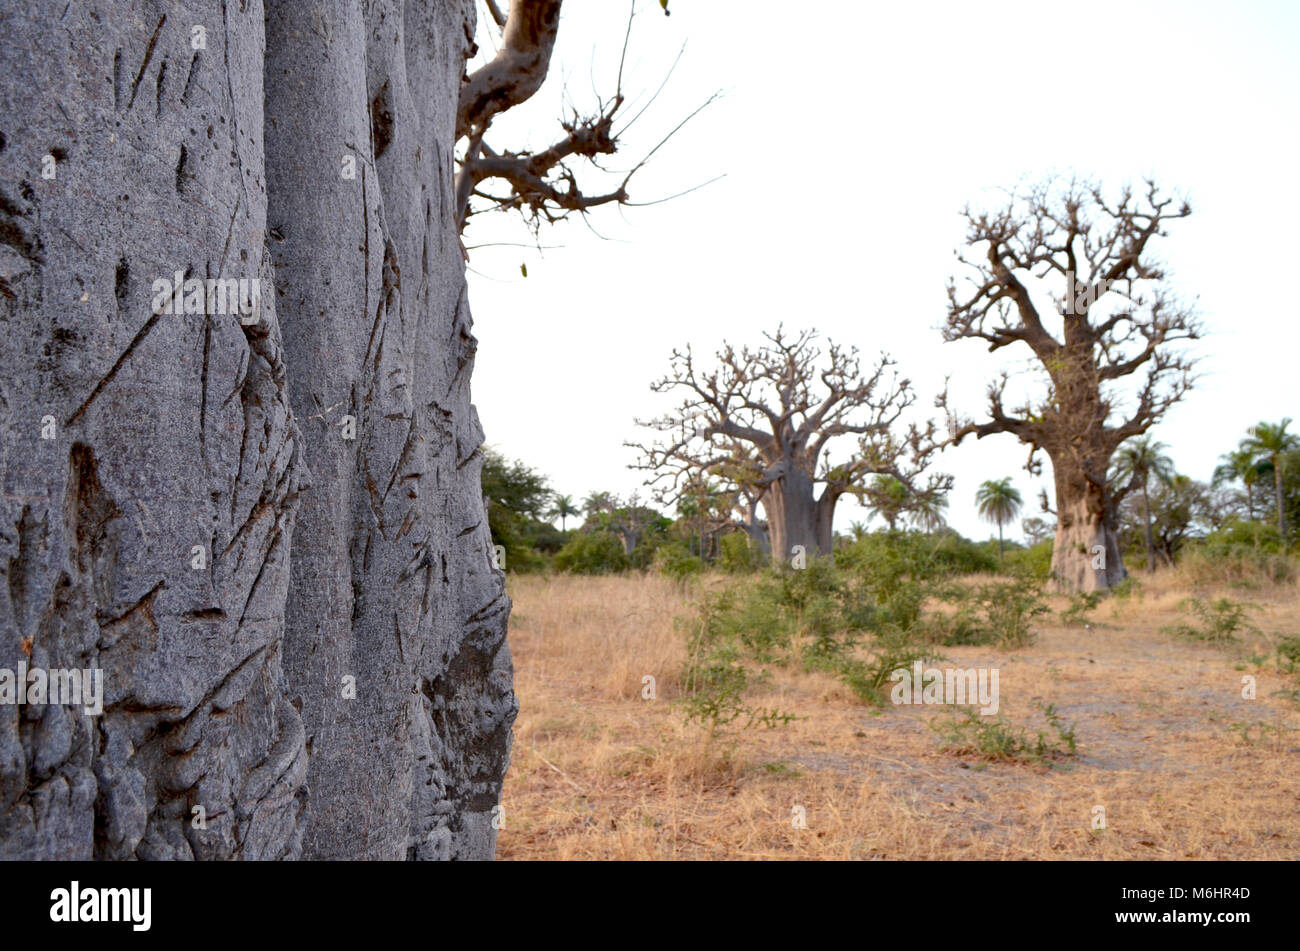 African baobabs in the North African savannah (Senegal, region of the Saloum river delta) - Stock Image